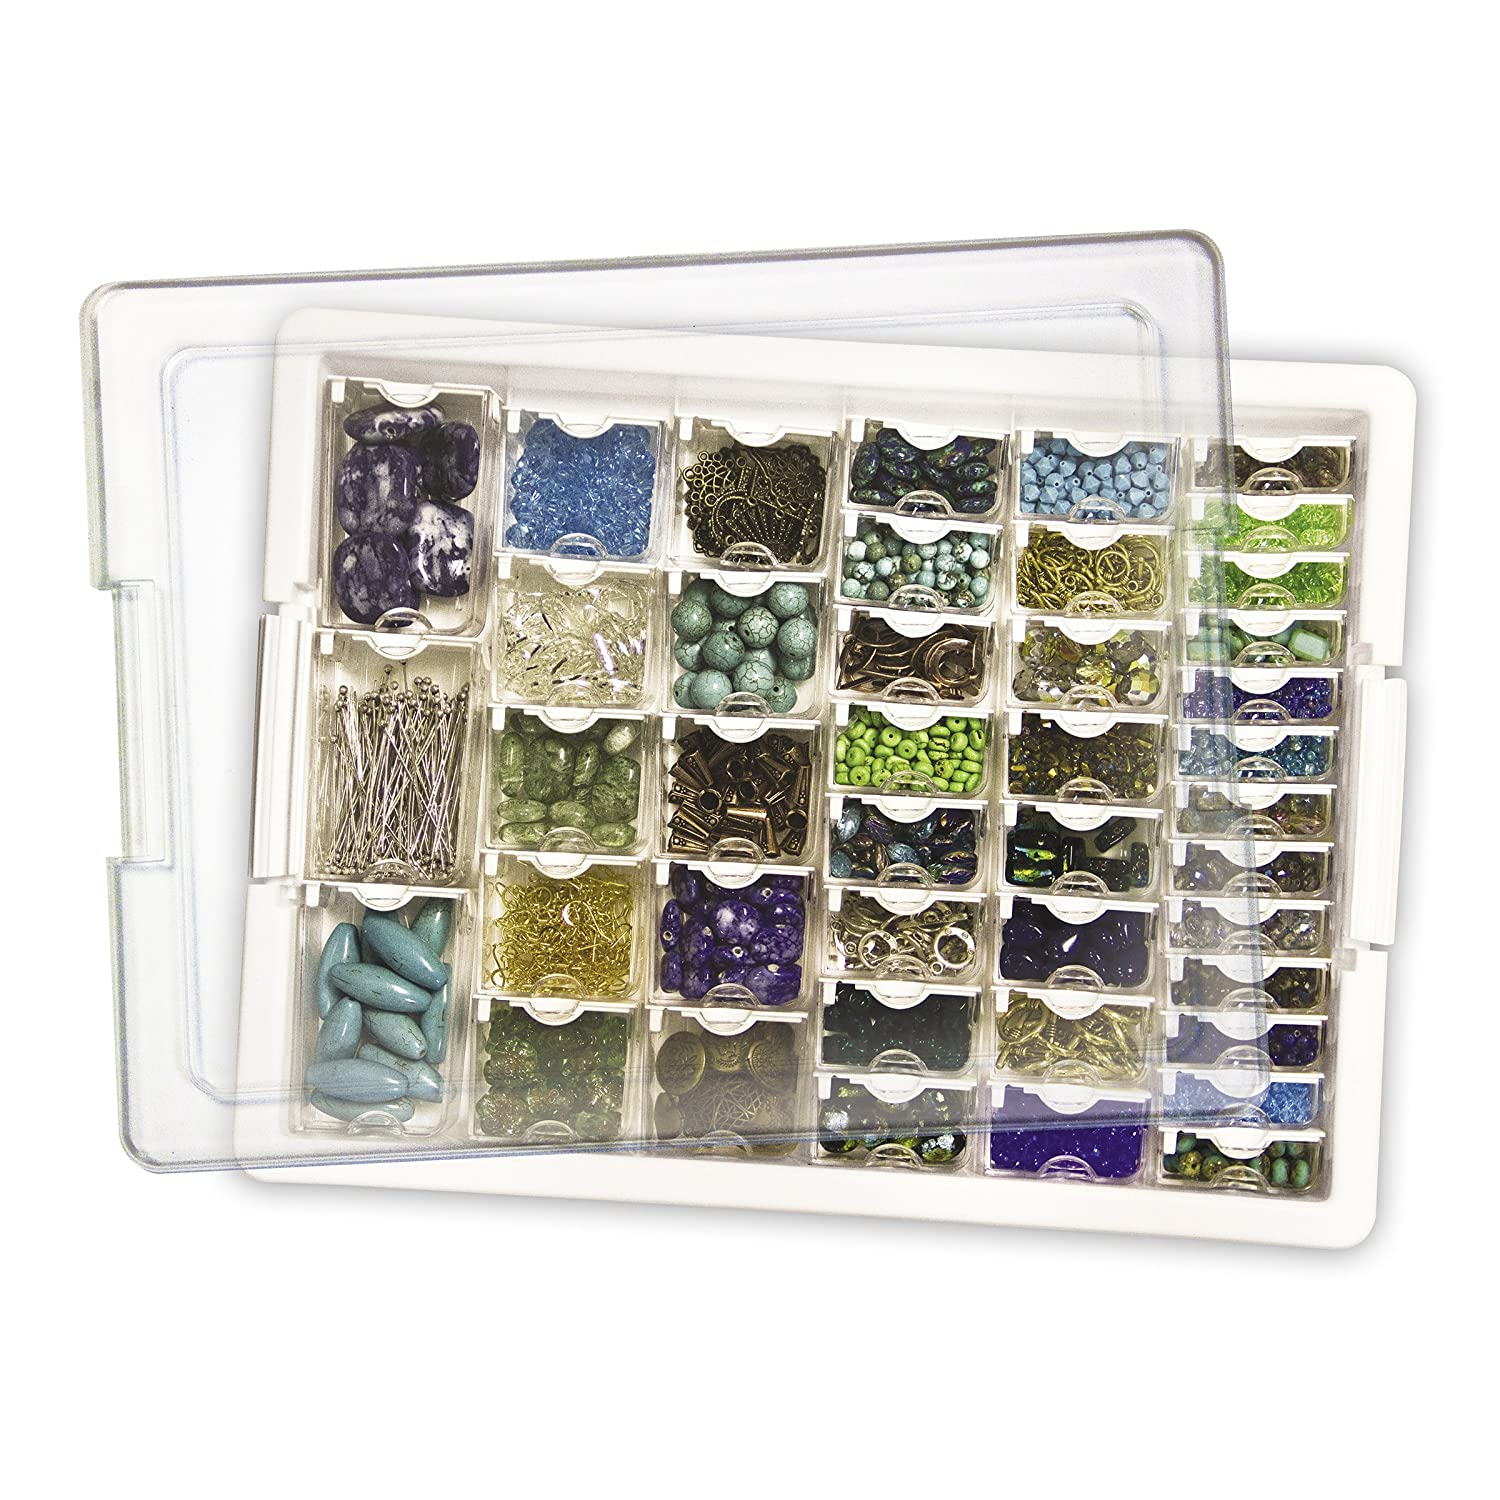 Amazon.com Darice Elizabeth Ward Bead Storage Solutions 45-Piece Assorted Storage Tray 42 Containers of Various Sizes with a Tray and Lid for Beads and ...  sc 1 st  Amazon.com & Amazon.com: Darice Elizabeth Ward Bead Storage Solutions: 45-Piece ...